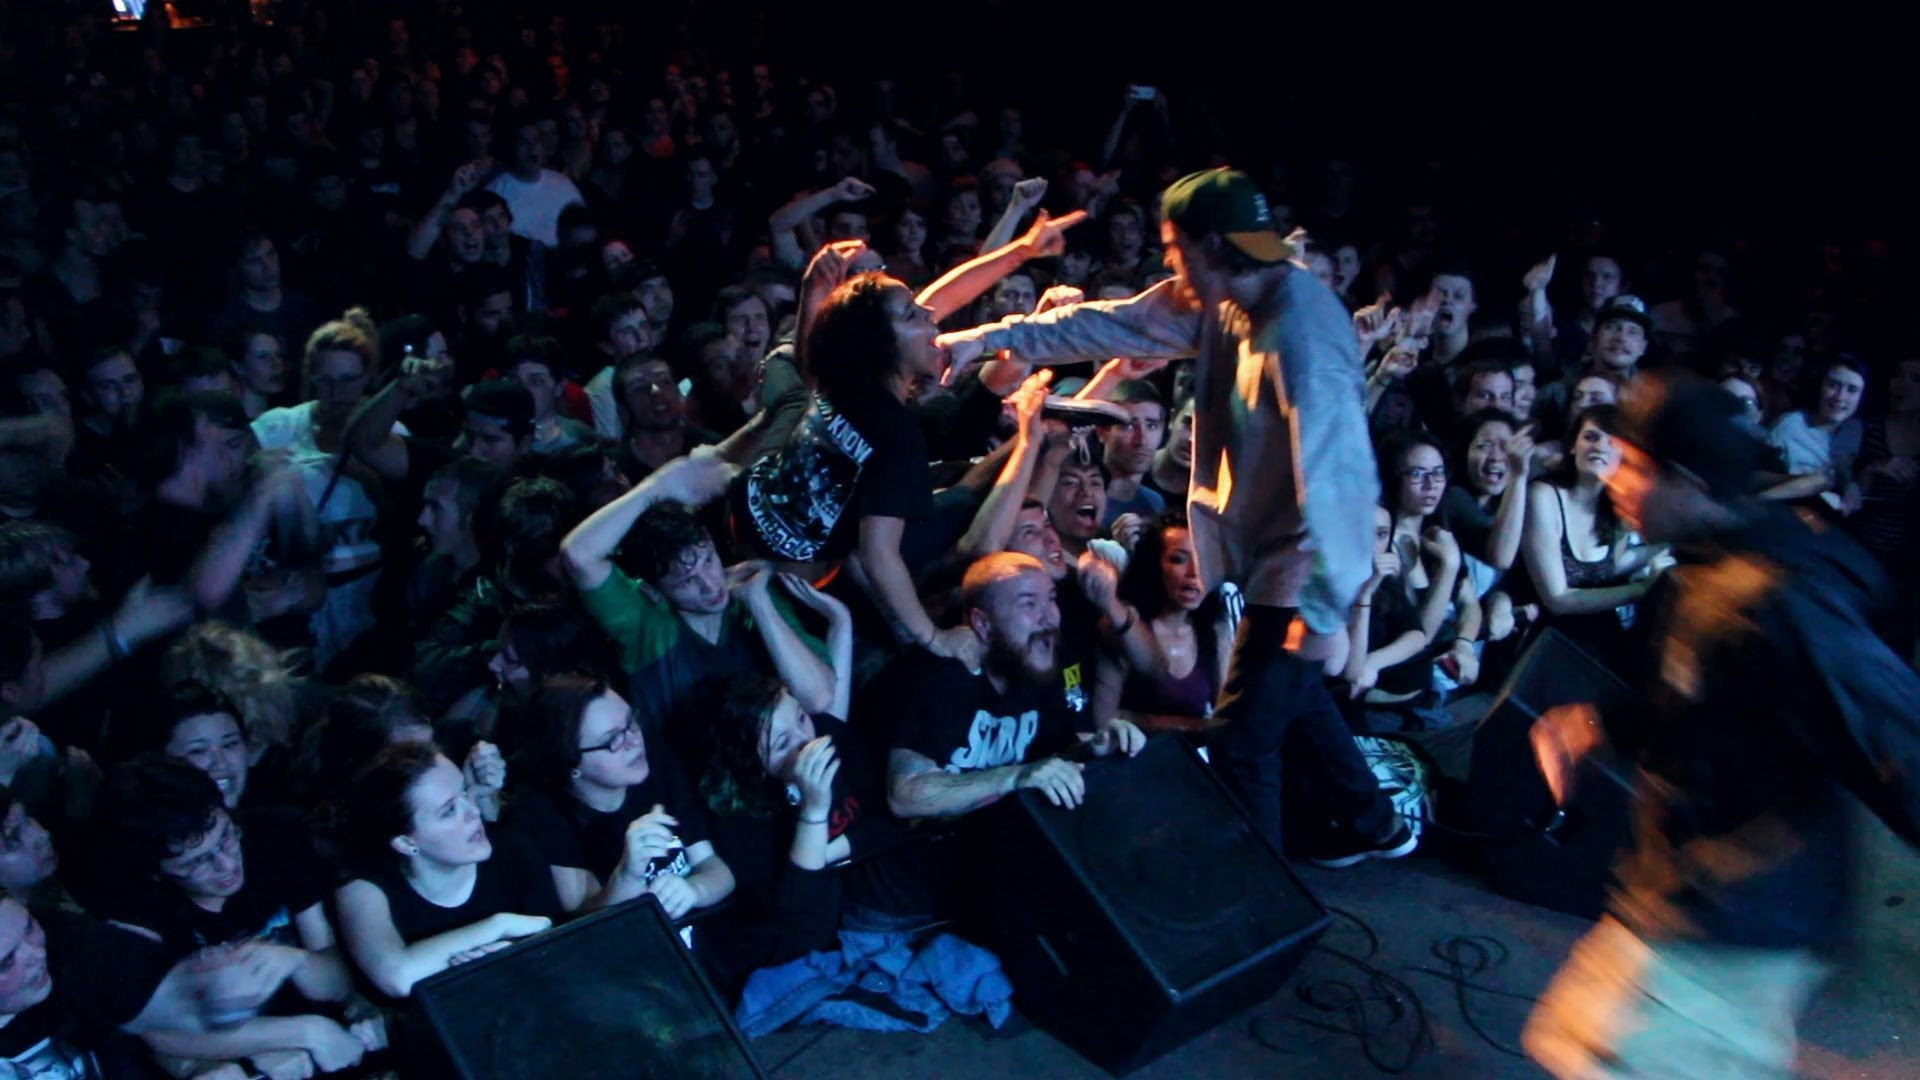 Download The Story So Far Wallpaper Gallery